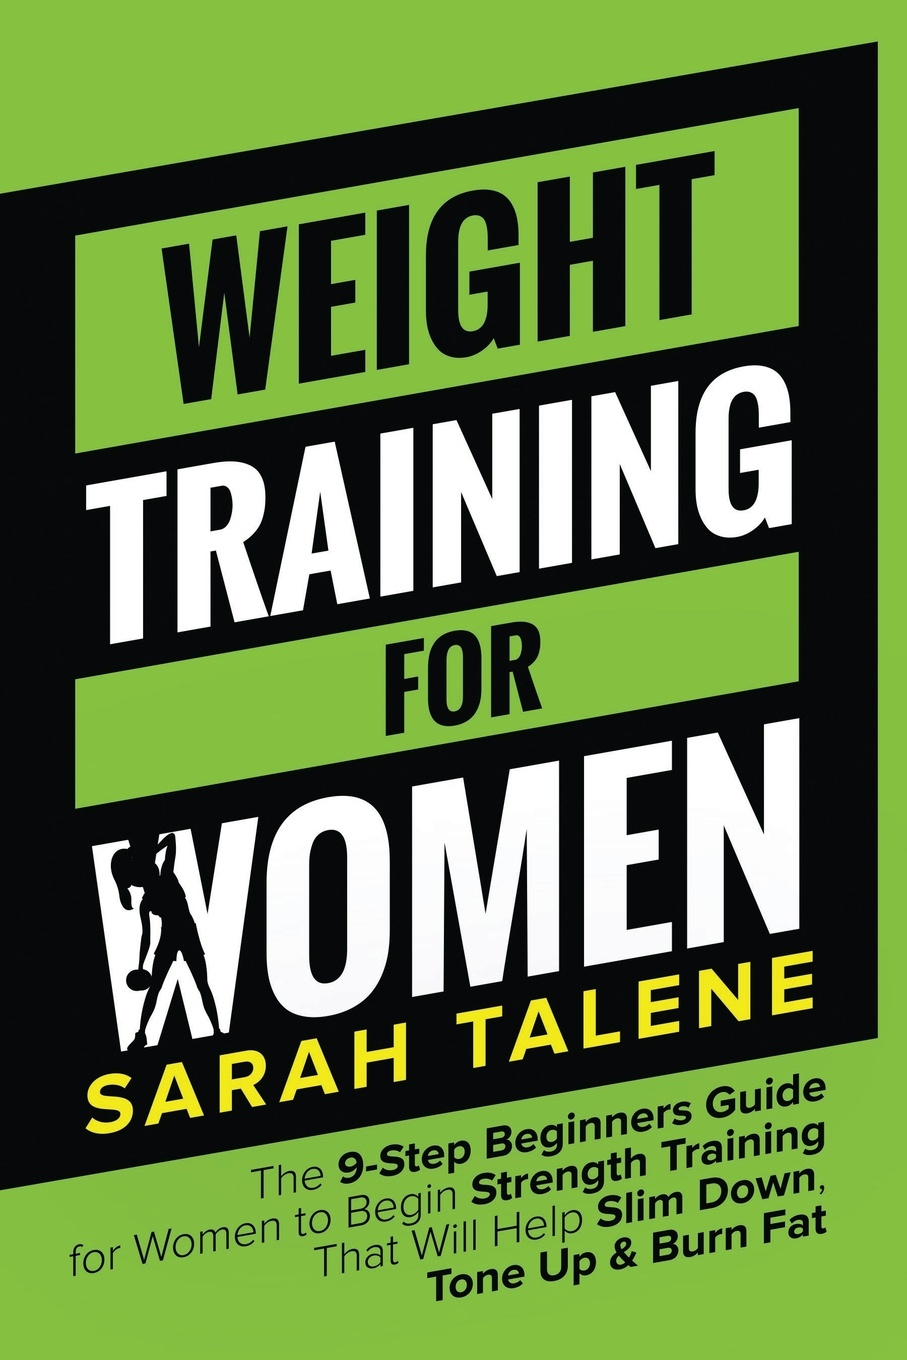 Sarah Talene Weight Training for Women. The 9-Step Beginners Guide for Women to Begin Strength Training That Will Help Slim Down, Tone Up & Burn Fat verzy soft bra bikinis women 2018 swimsuits plus large size swimming suit for fat sexy women bikini free wire swimwear mid waist